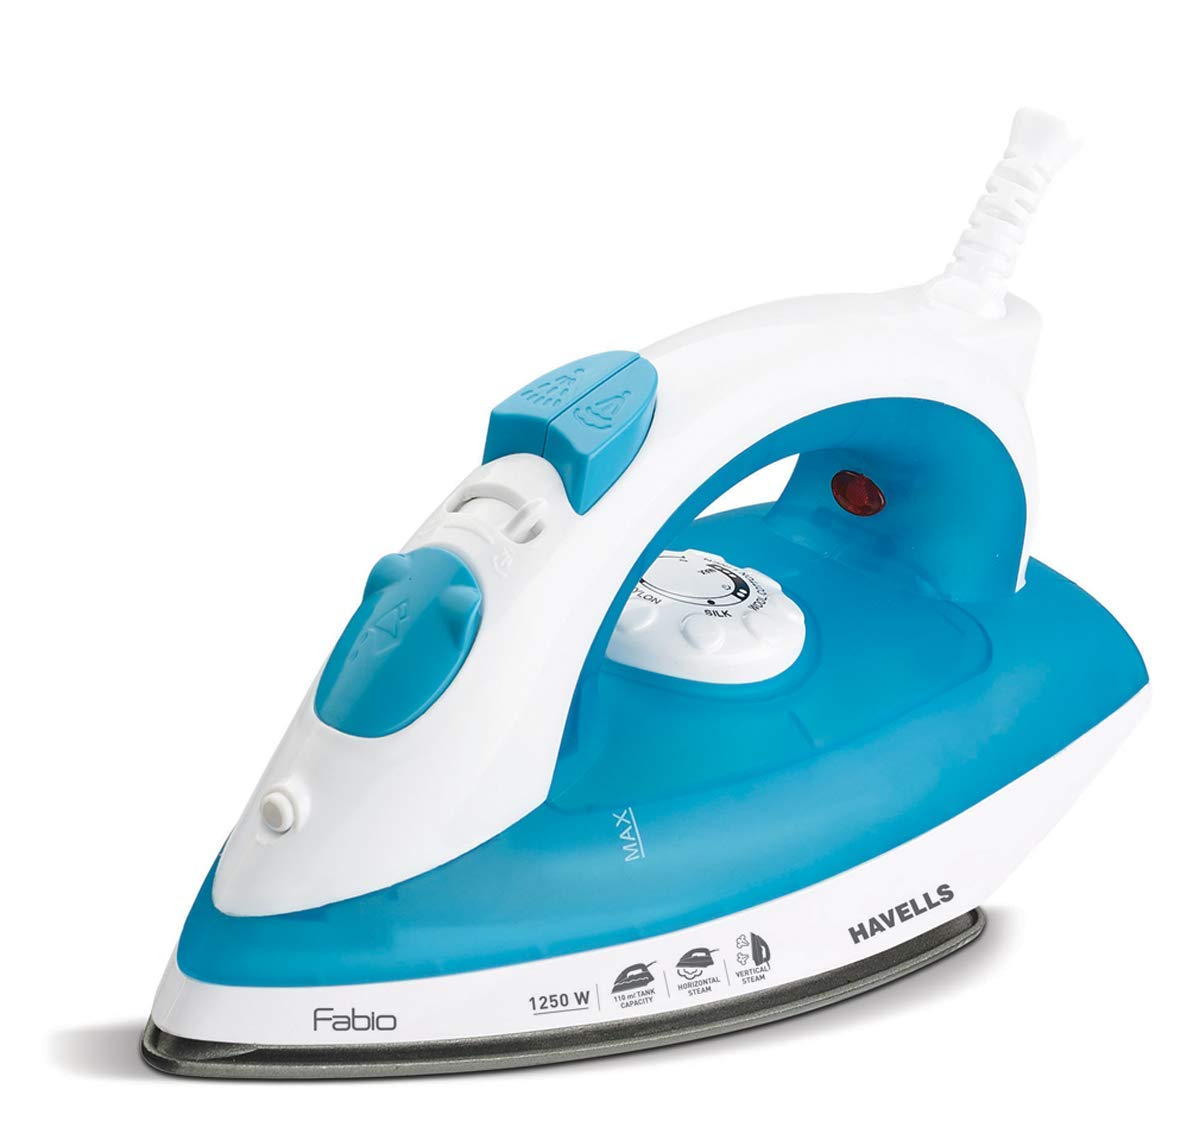 havells fabio steam iron